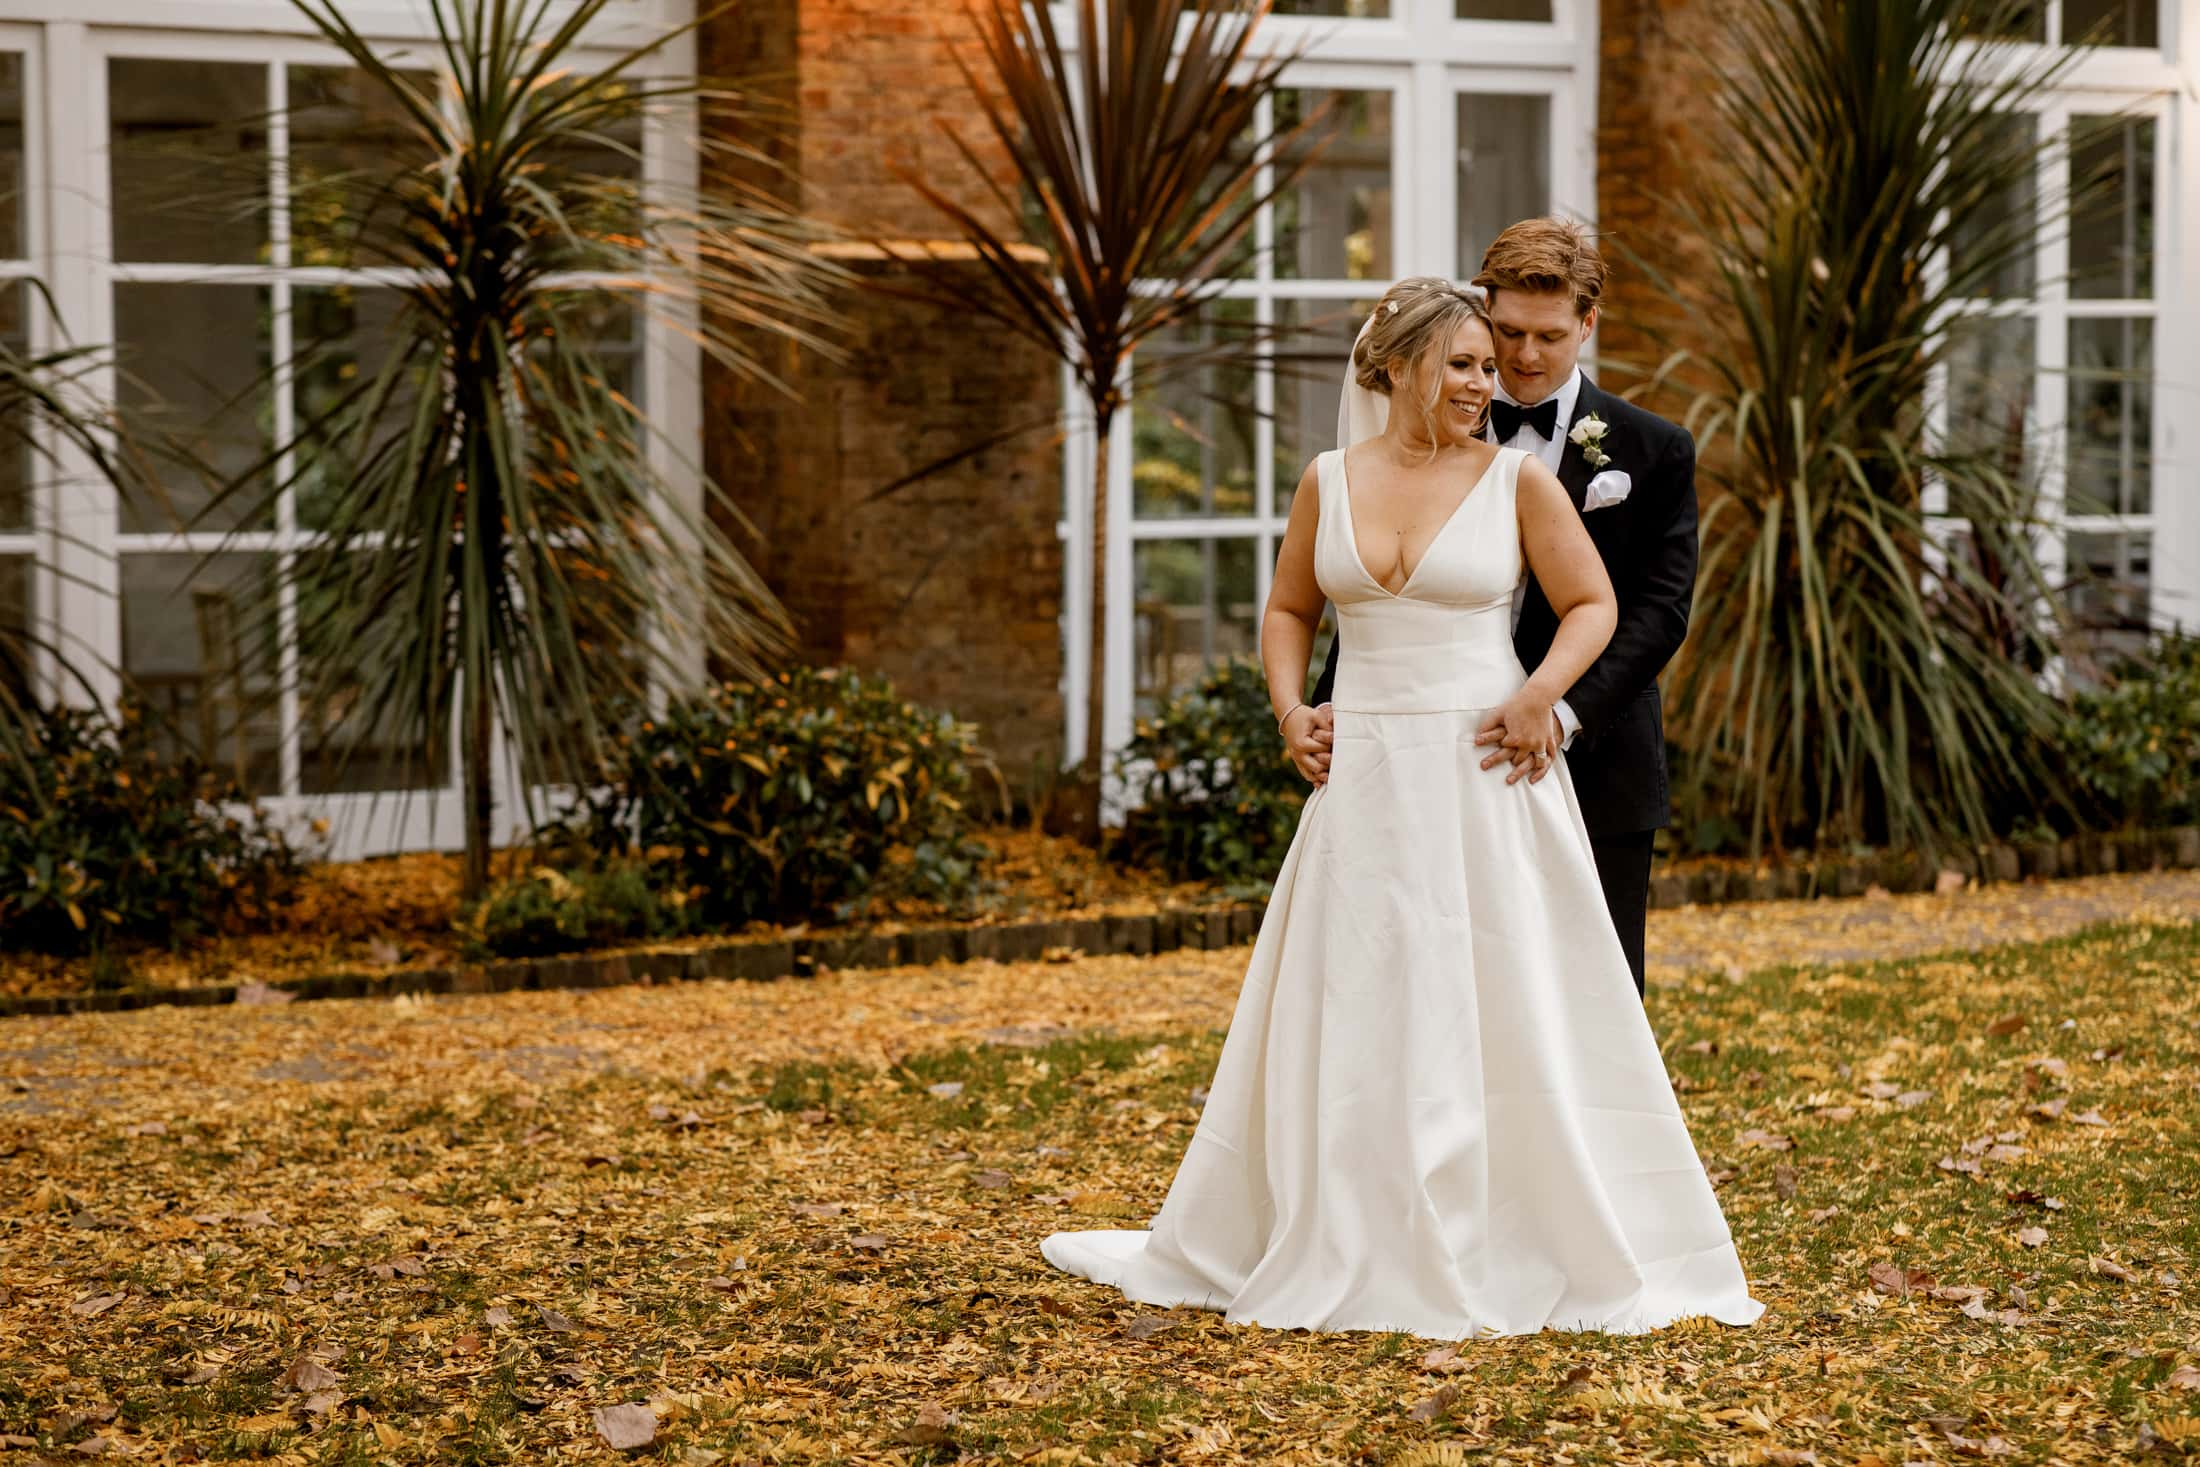 holland park wedding photographer